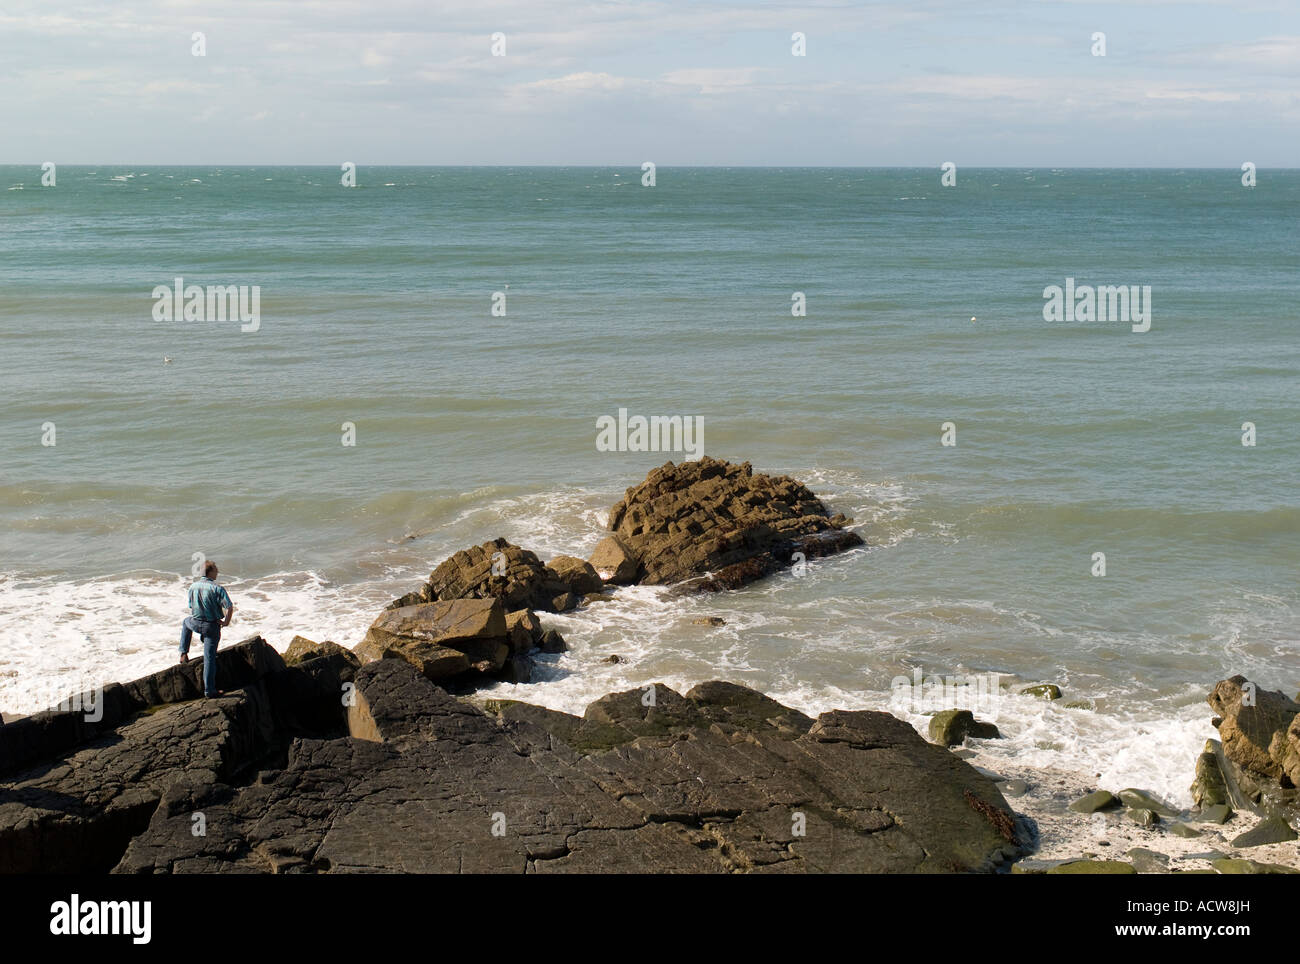 Man standing alone on the rocky shore at New Quay ceredigion looking at the waves on Cardigan Bay west wales UK - Stock Image